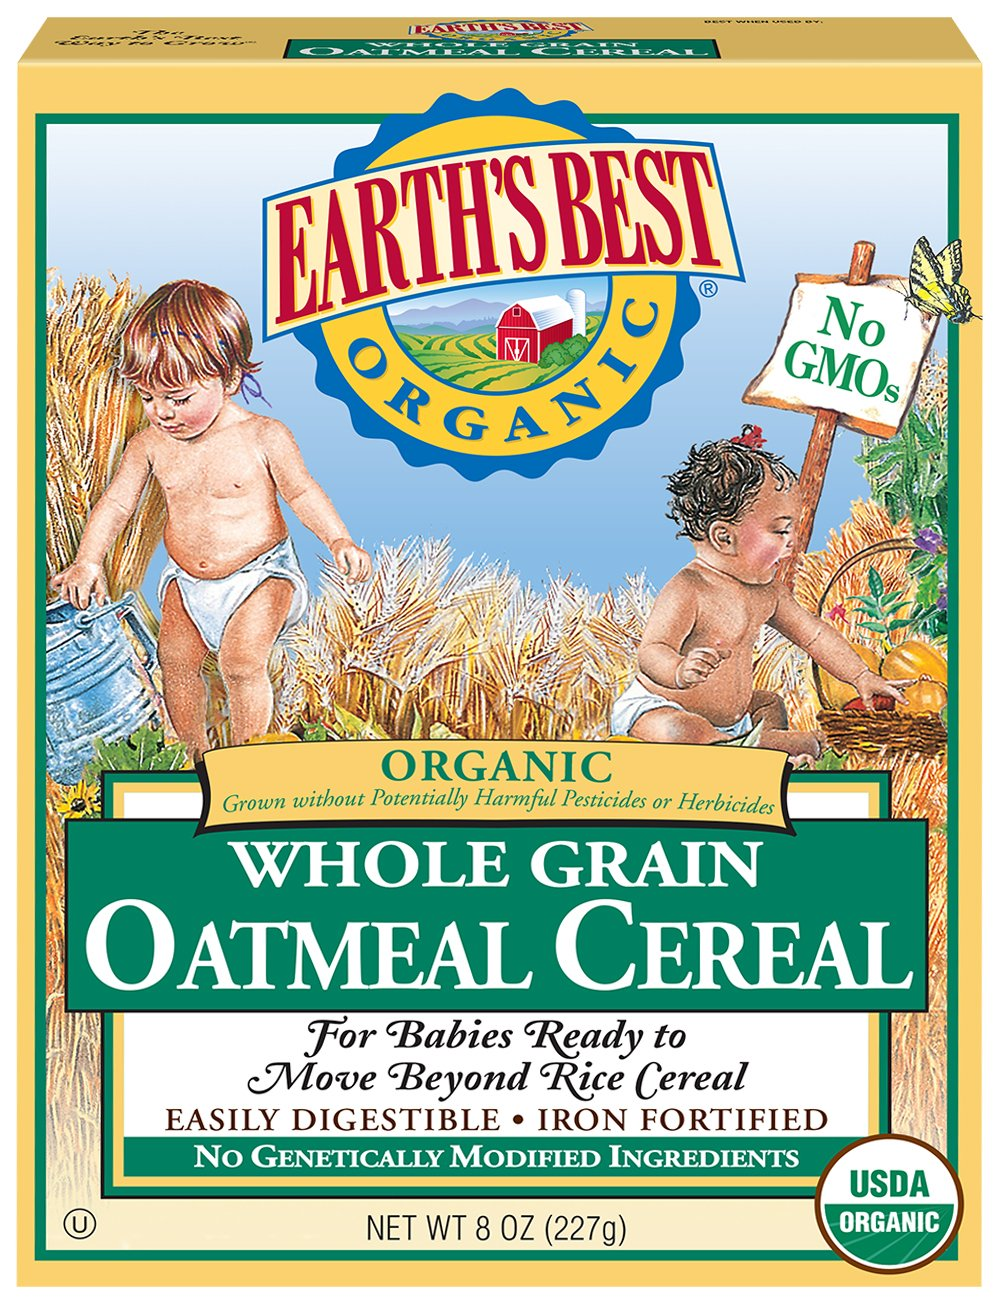 Earth's Best Organic Infant Cereal, Whole Grain Oatmeal, 8 oz. Box (Pack of 12) by Earth's Best